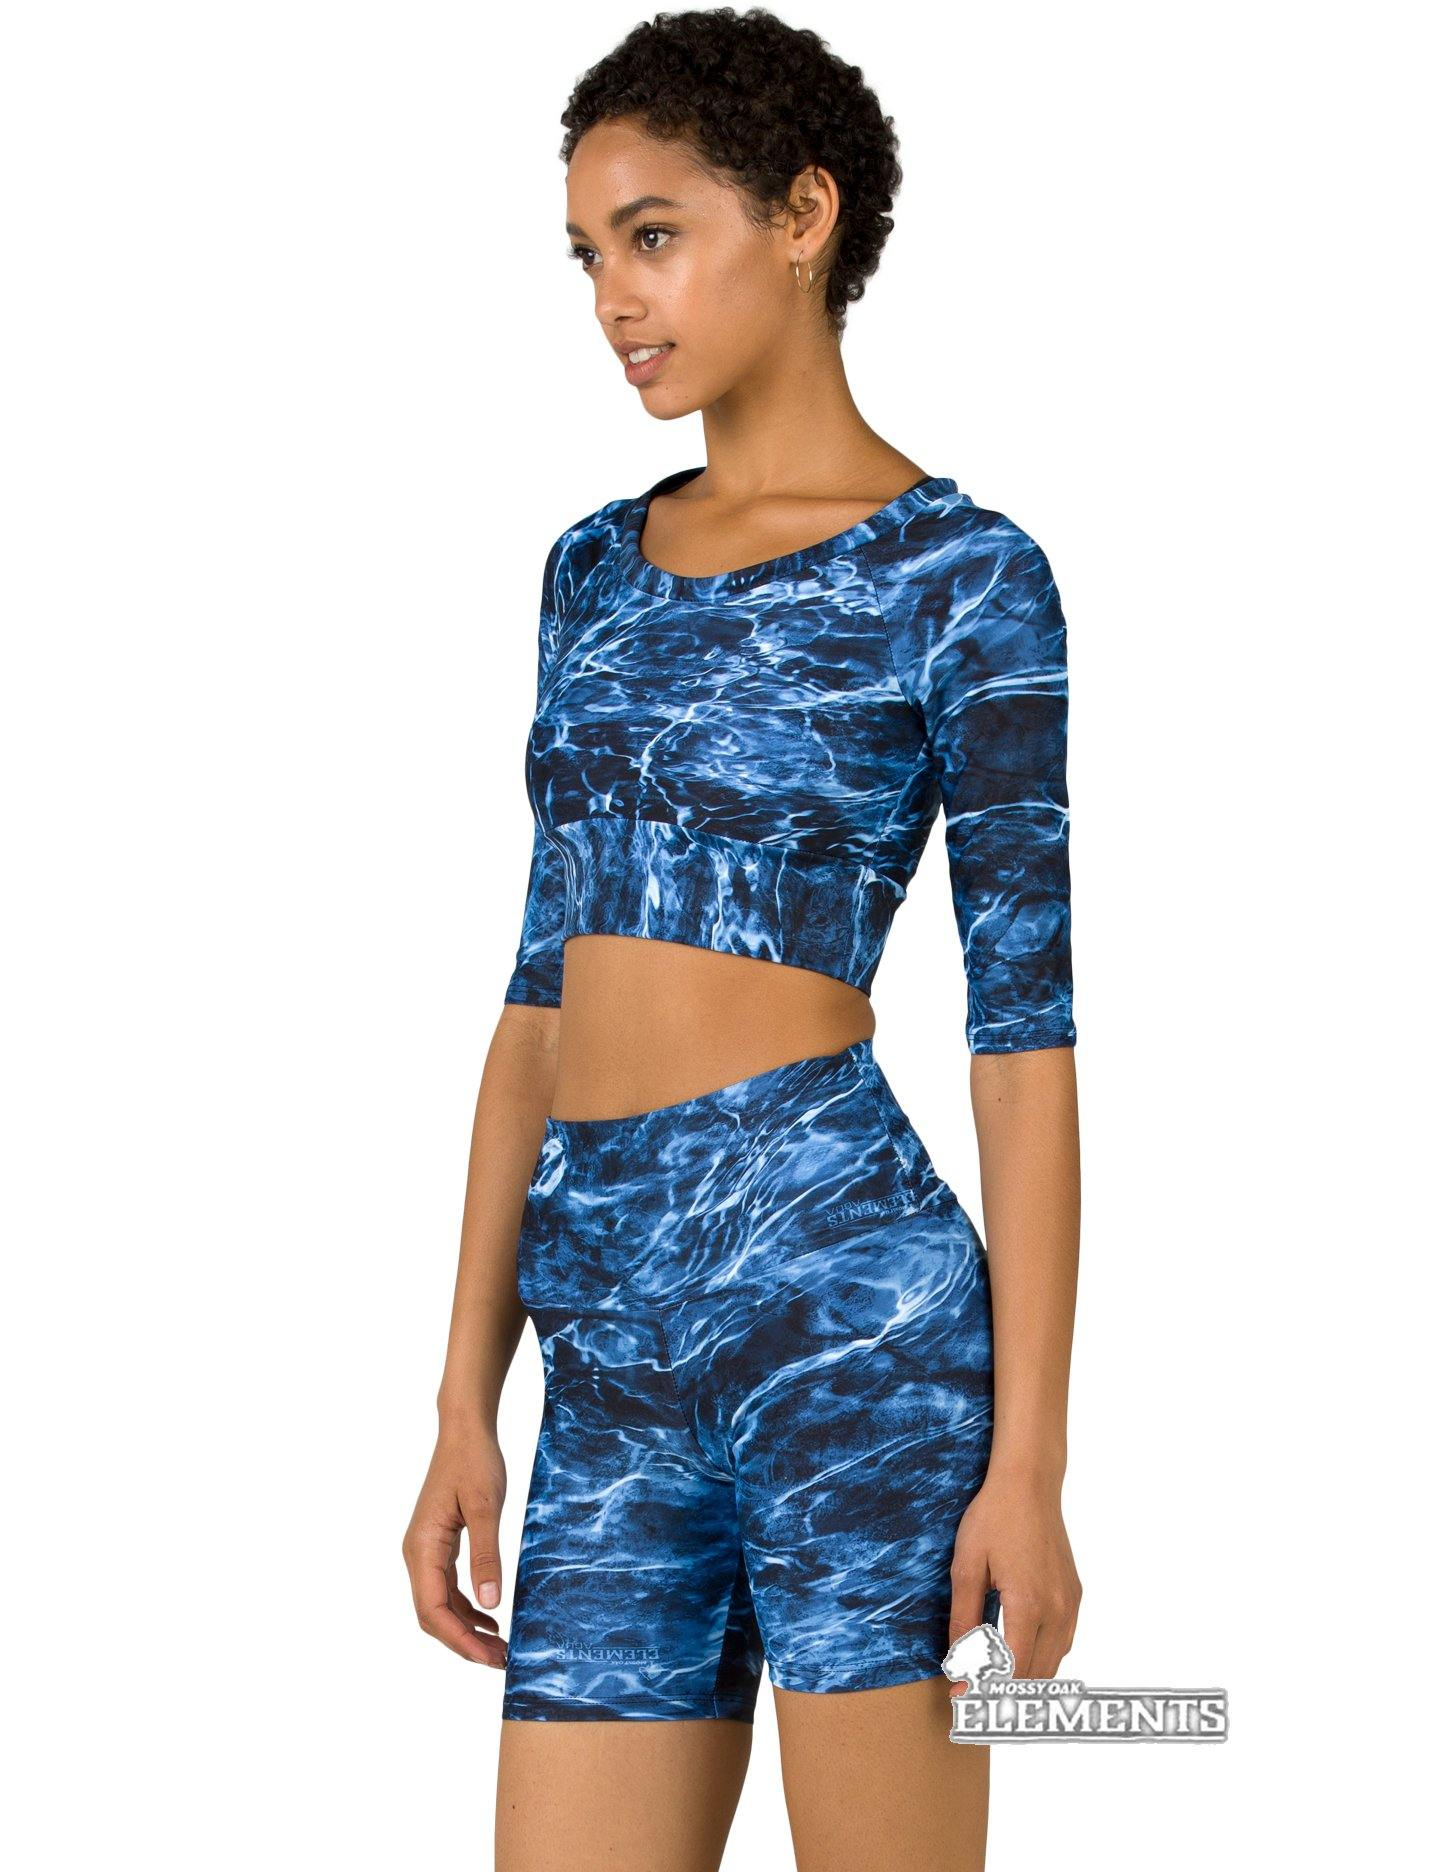 Apsara Cropped Top, Mossy Oak Elements Marlin